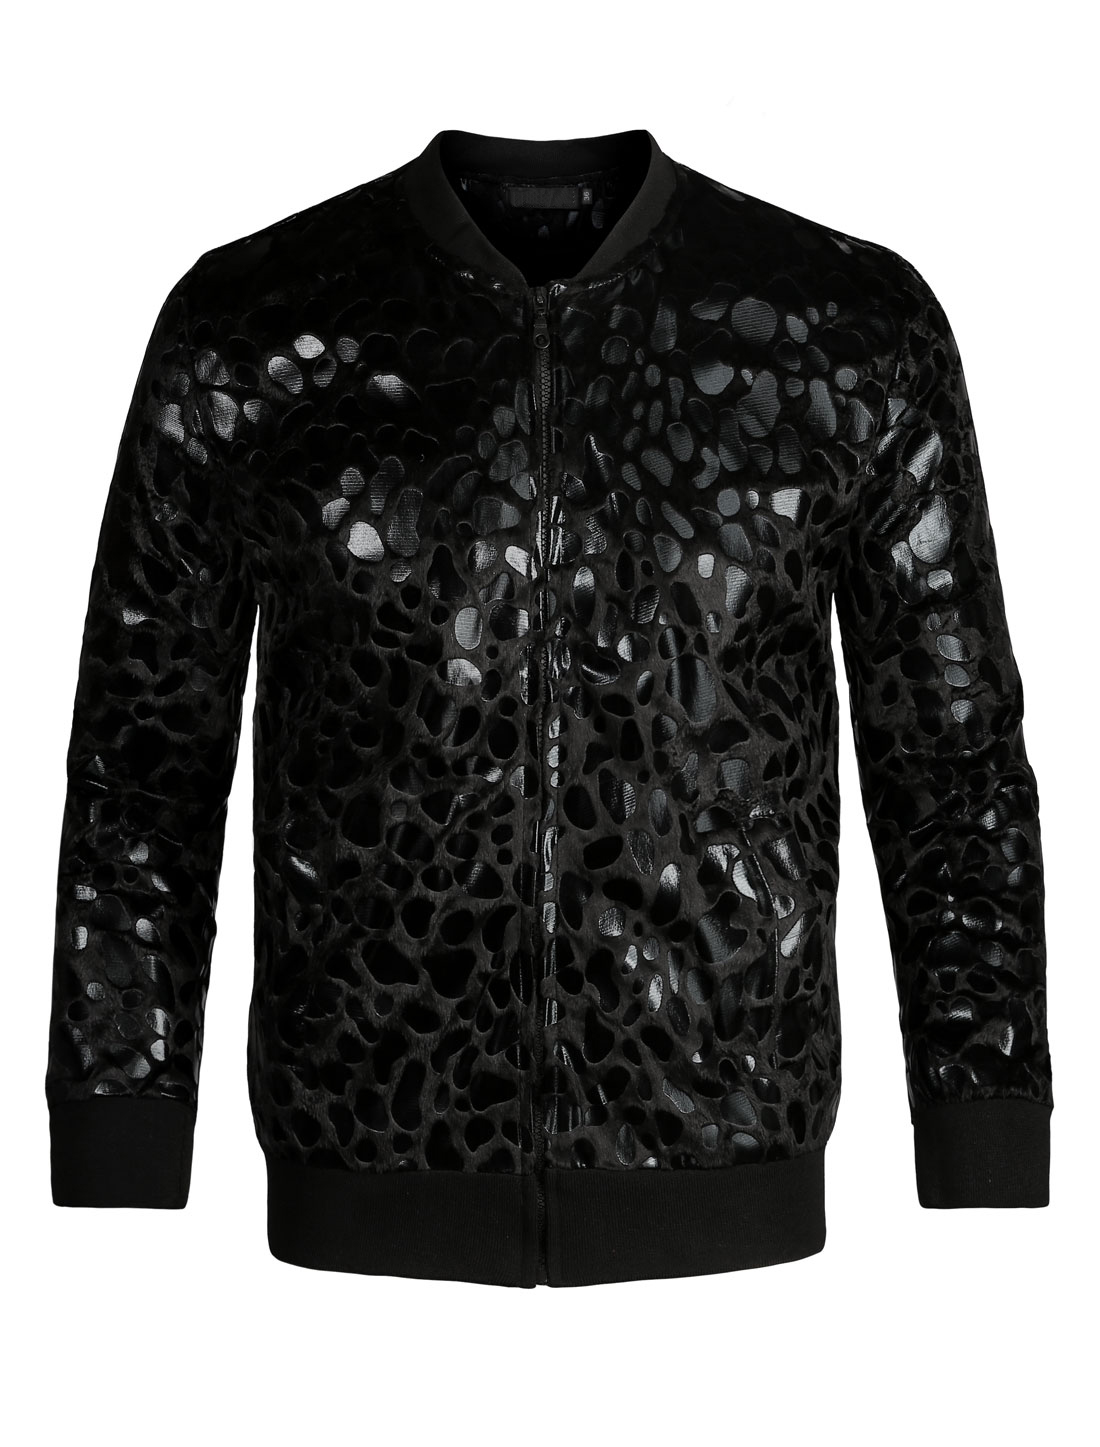 Men Stylish Rib Knit Collar Leopard Print Casual Jacket Black S